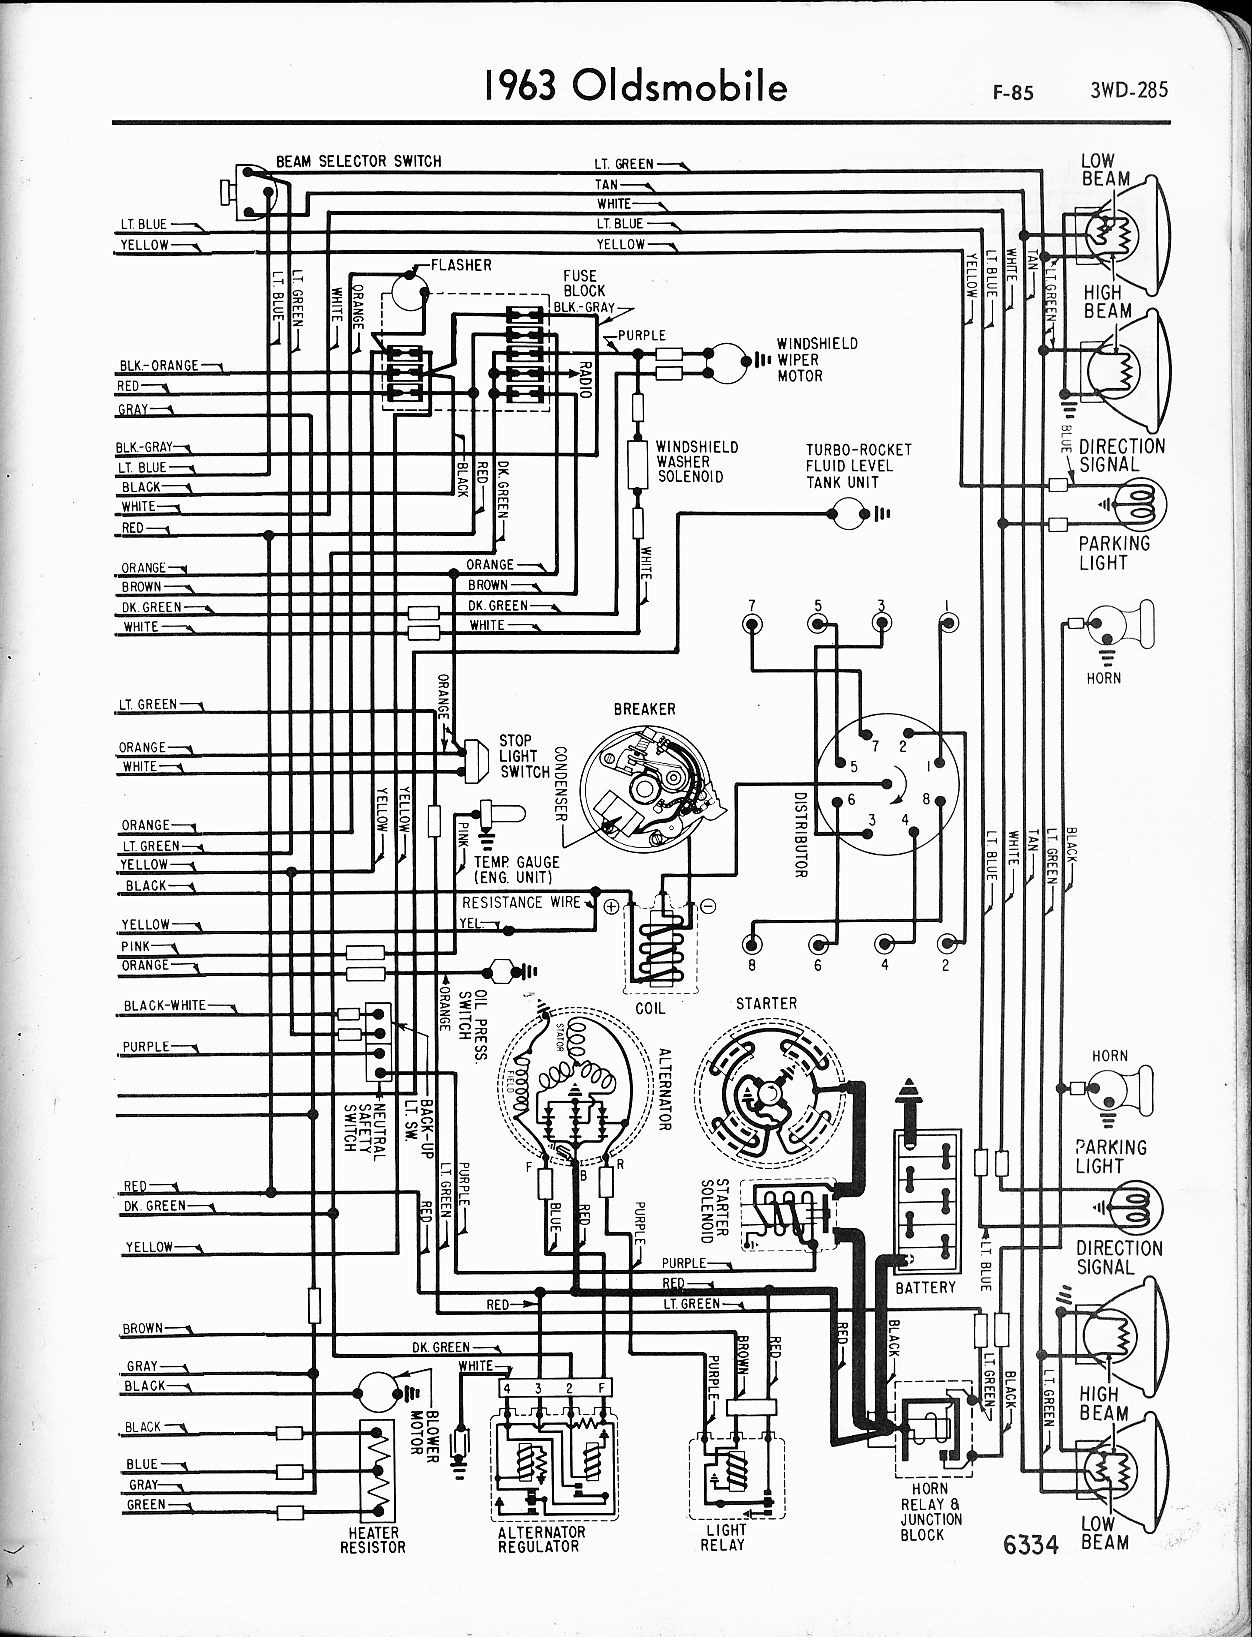 2001 pontiac grand am engine diagram anything wiring diagrams u2022 rh  optionfire co 2004 Pontiac Grand Prix Wiring-Diagram 2001 Pontiac Grand  Prix Ignition ...